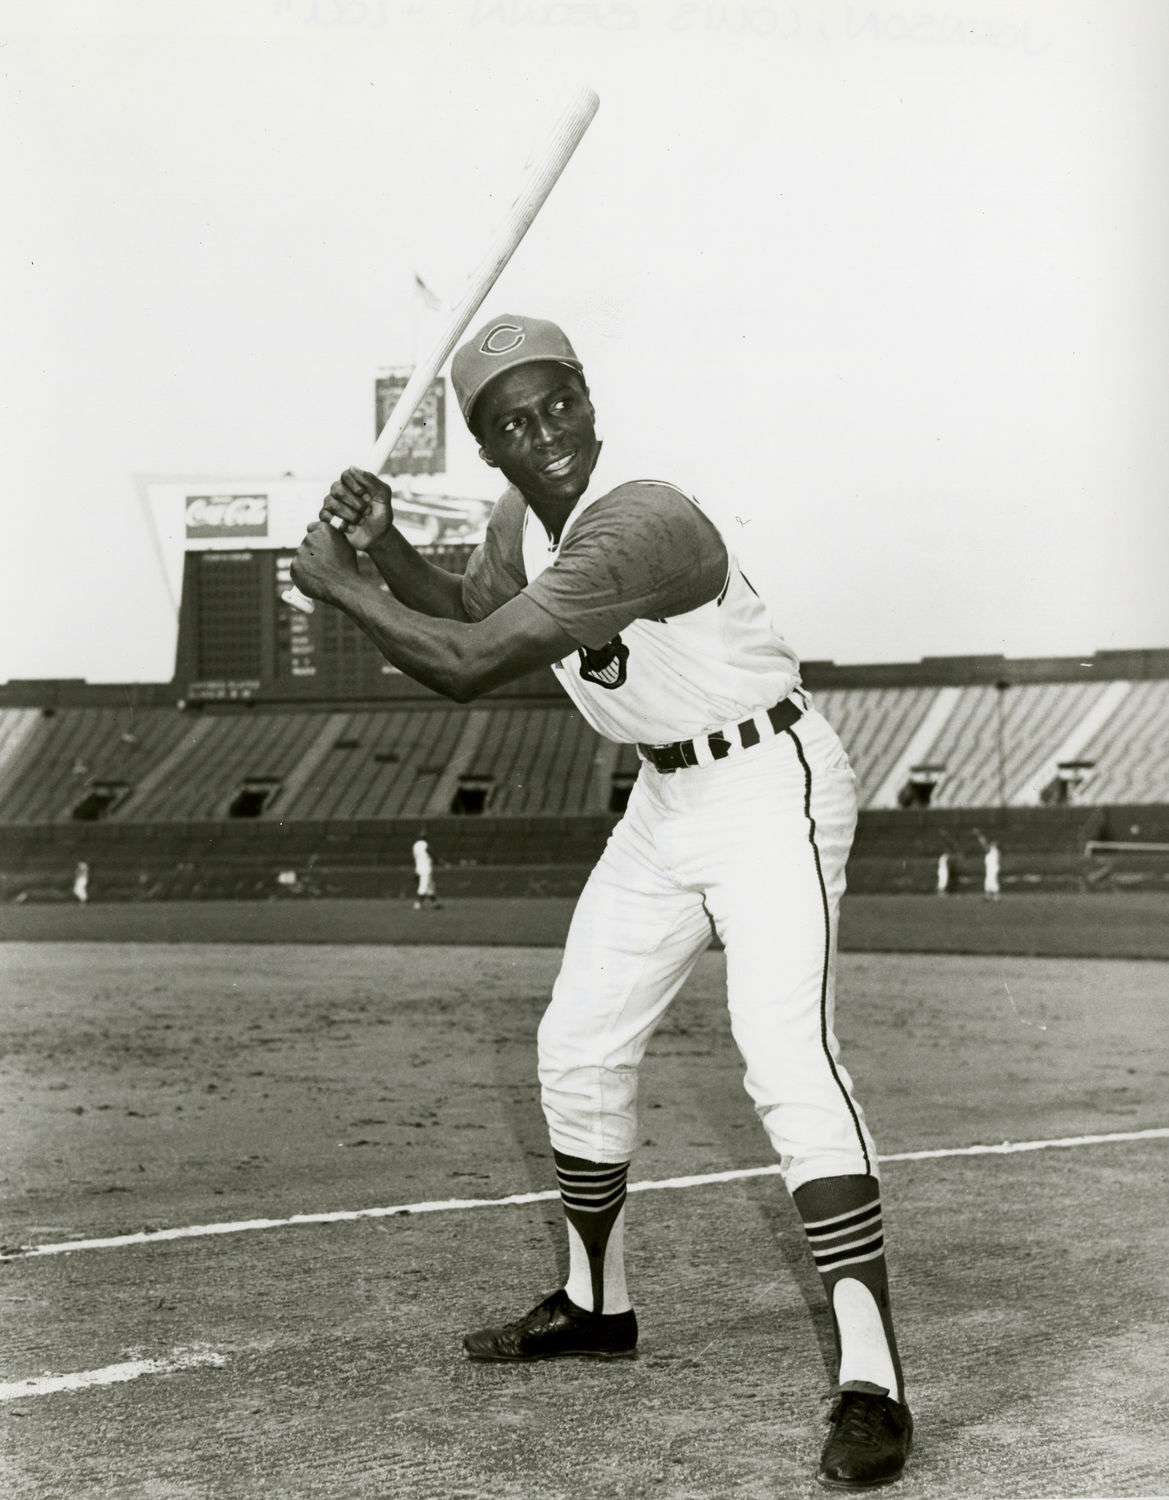 Lou Johnson Of The Cleveland Indians Posed Batting 1968 BL 1073 73 National Baseball Hall Fame Library